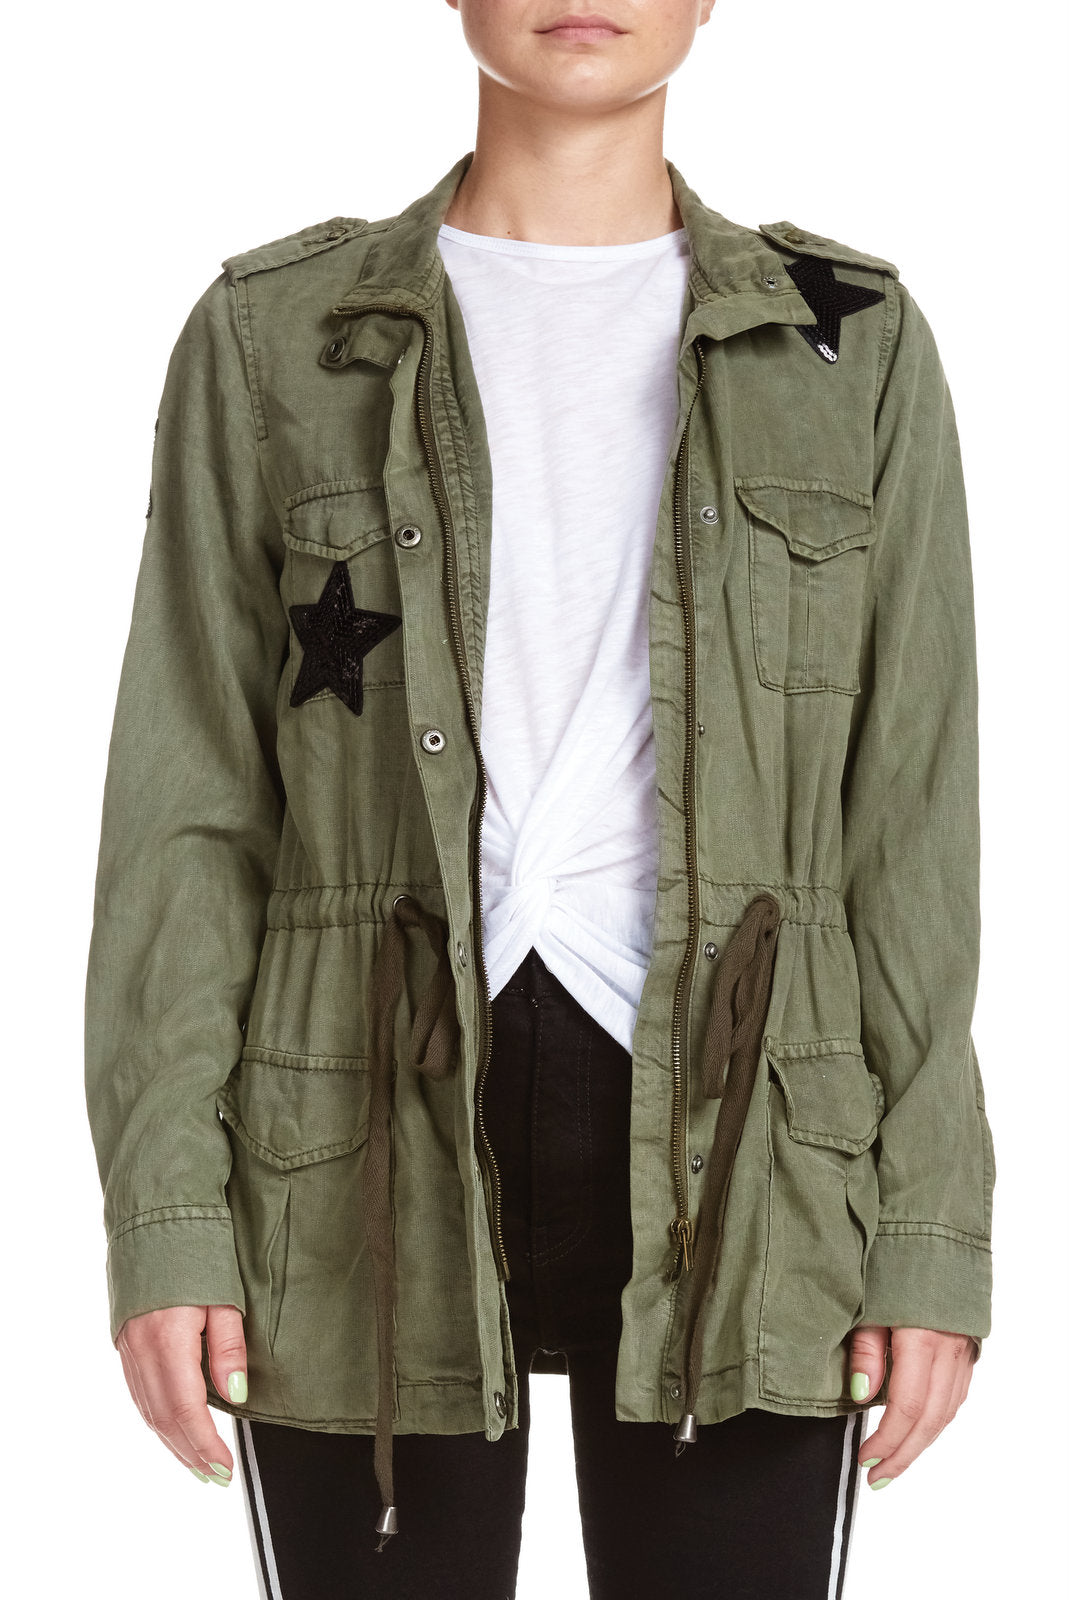 Olive Green Jacket with Black Stars